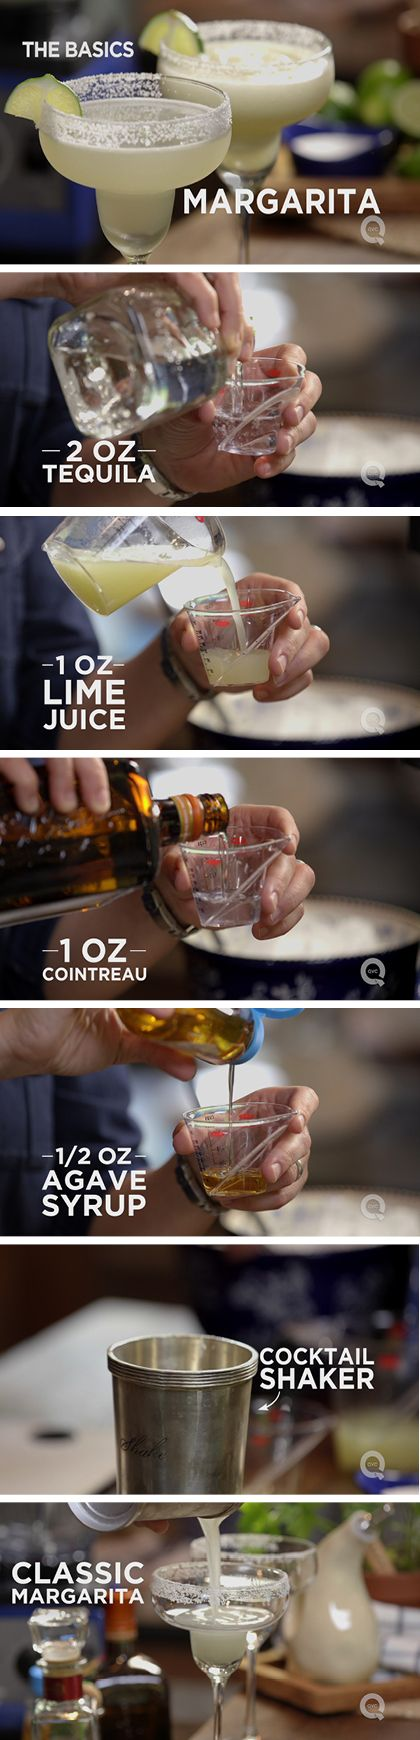 Make it a classic! Enjoy a refreshing margarita with this simple method.